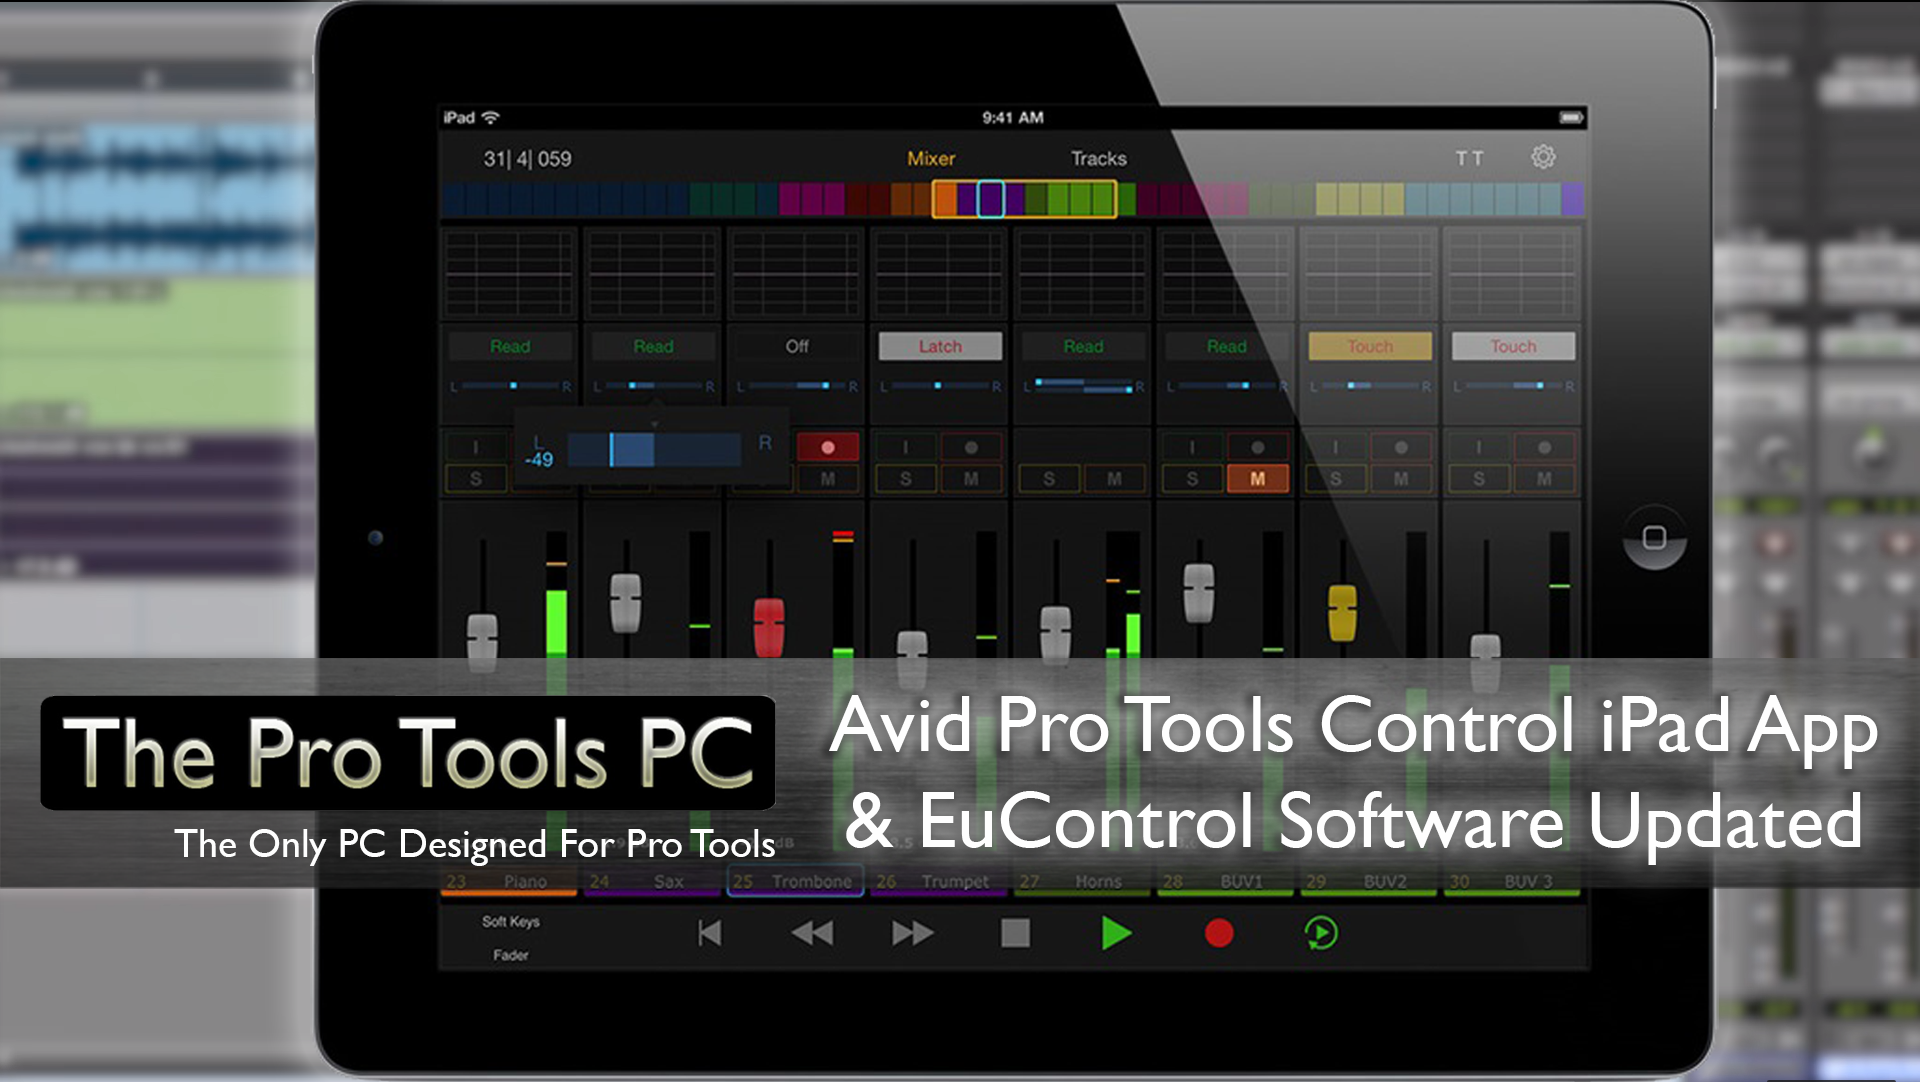 Eucontrol Archives - The Pro Tools PC